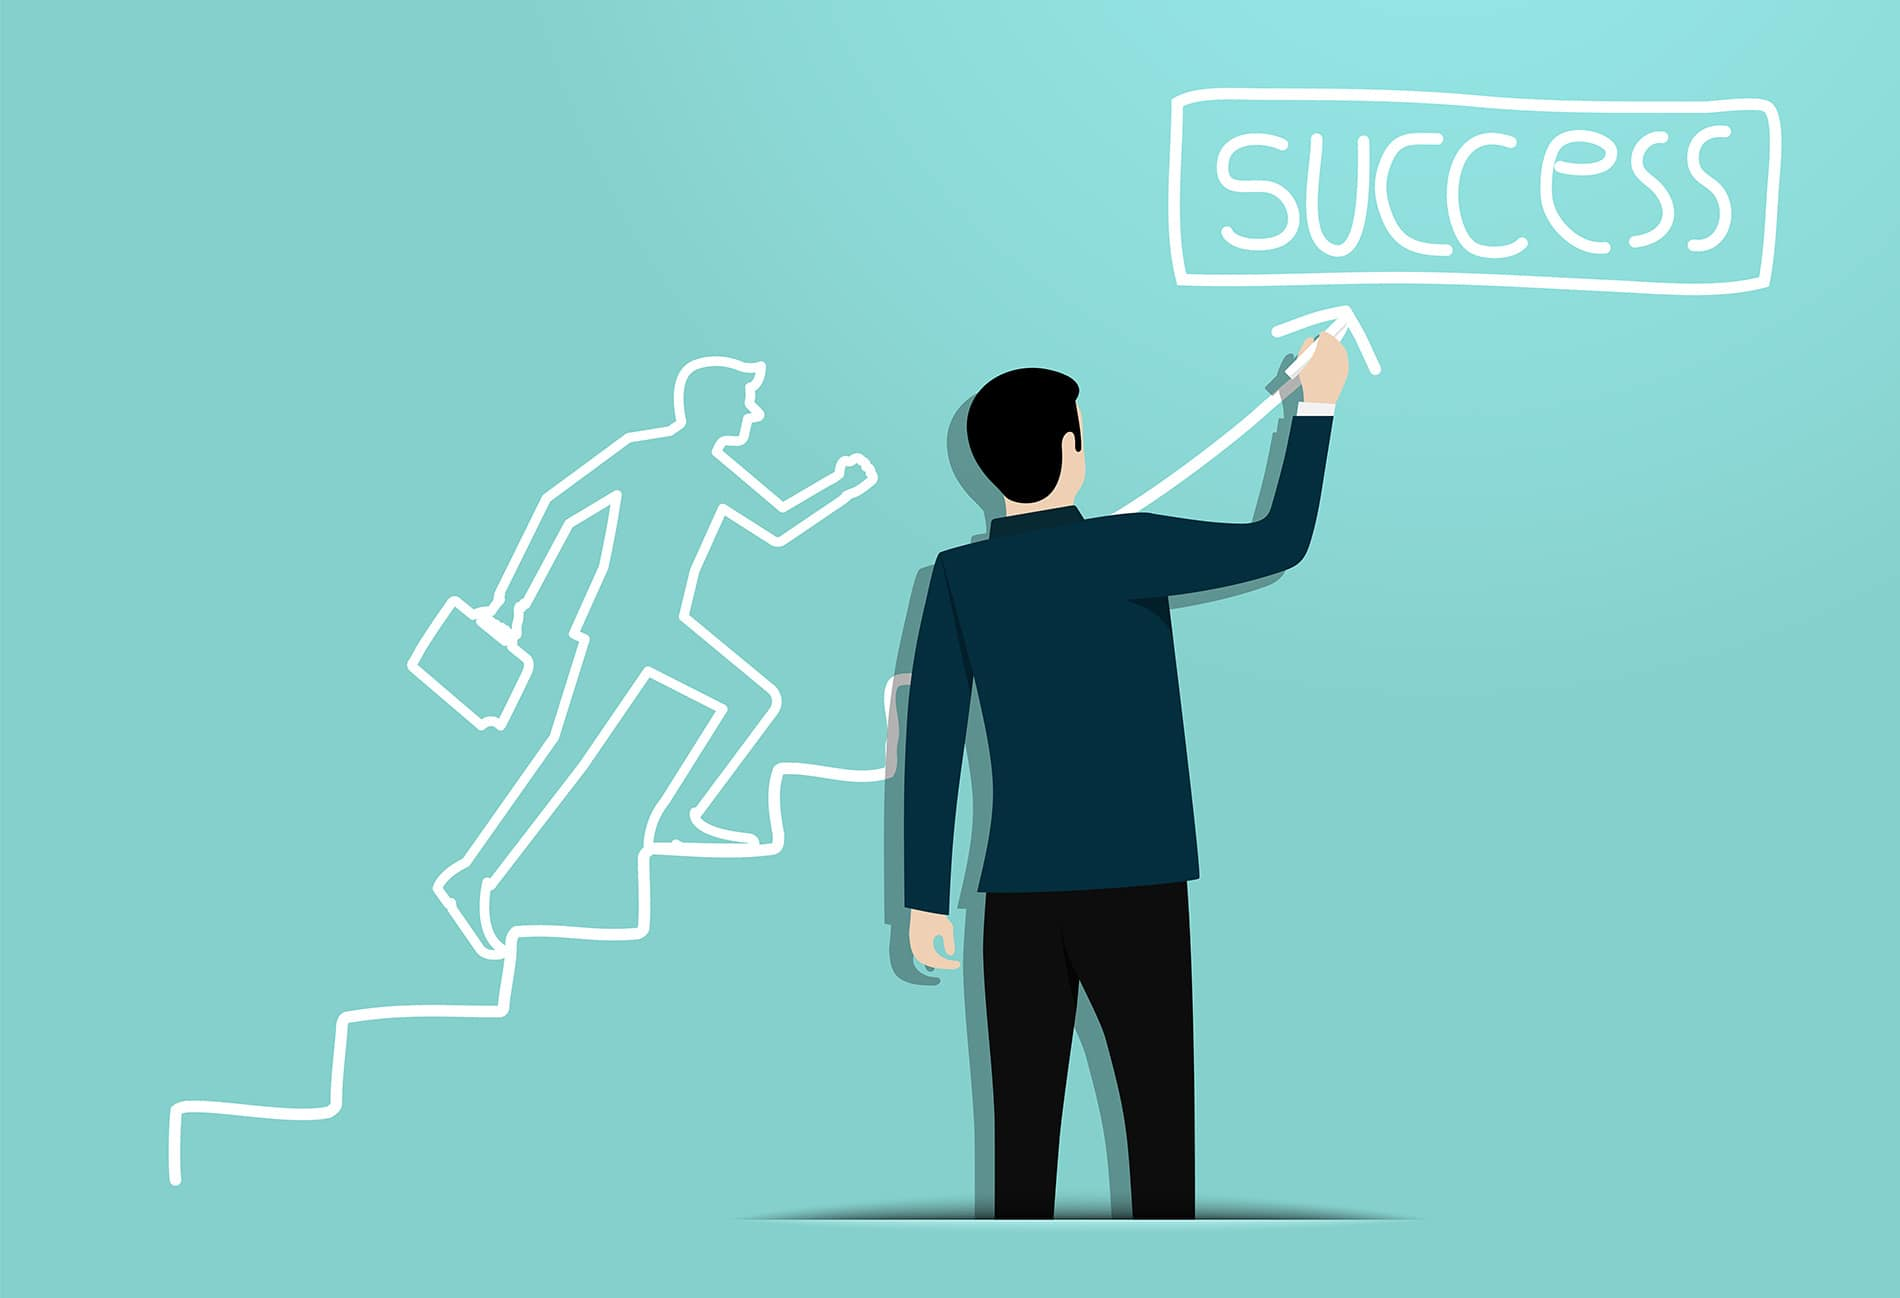 Tips to be a successful entrepreneur